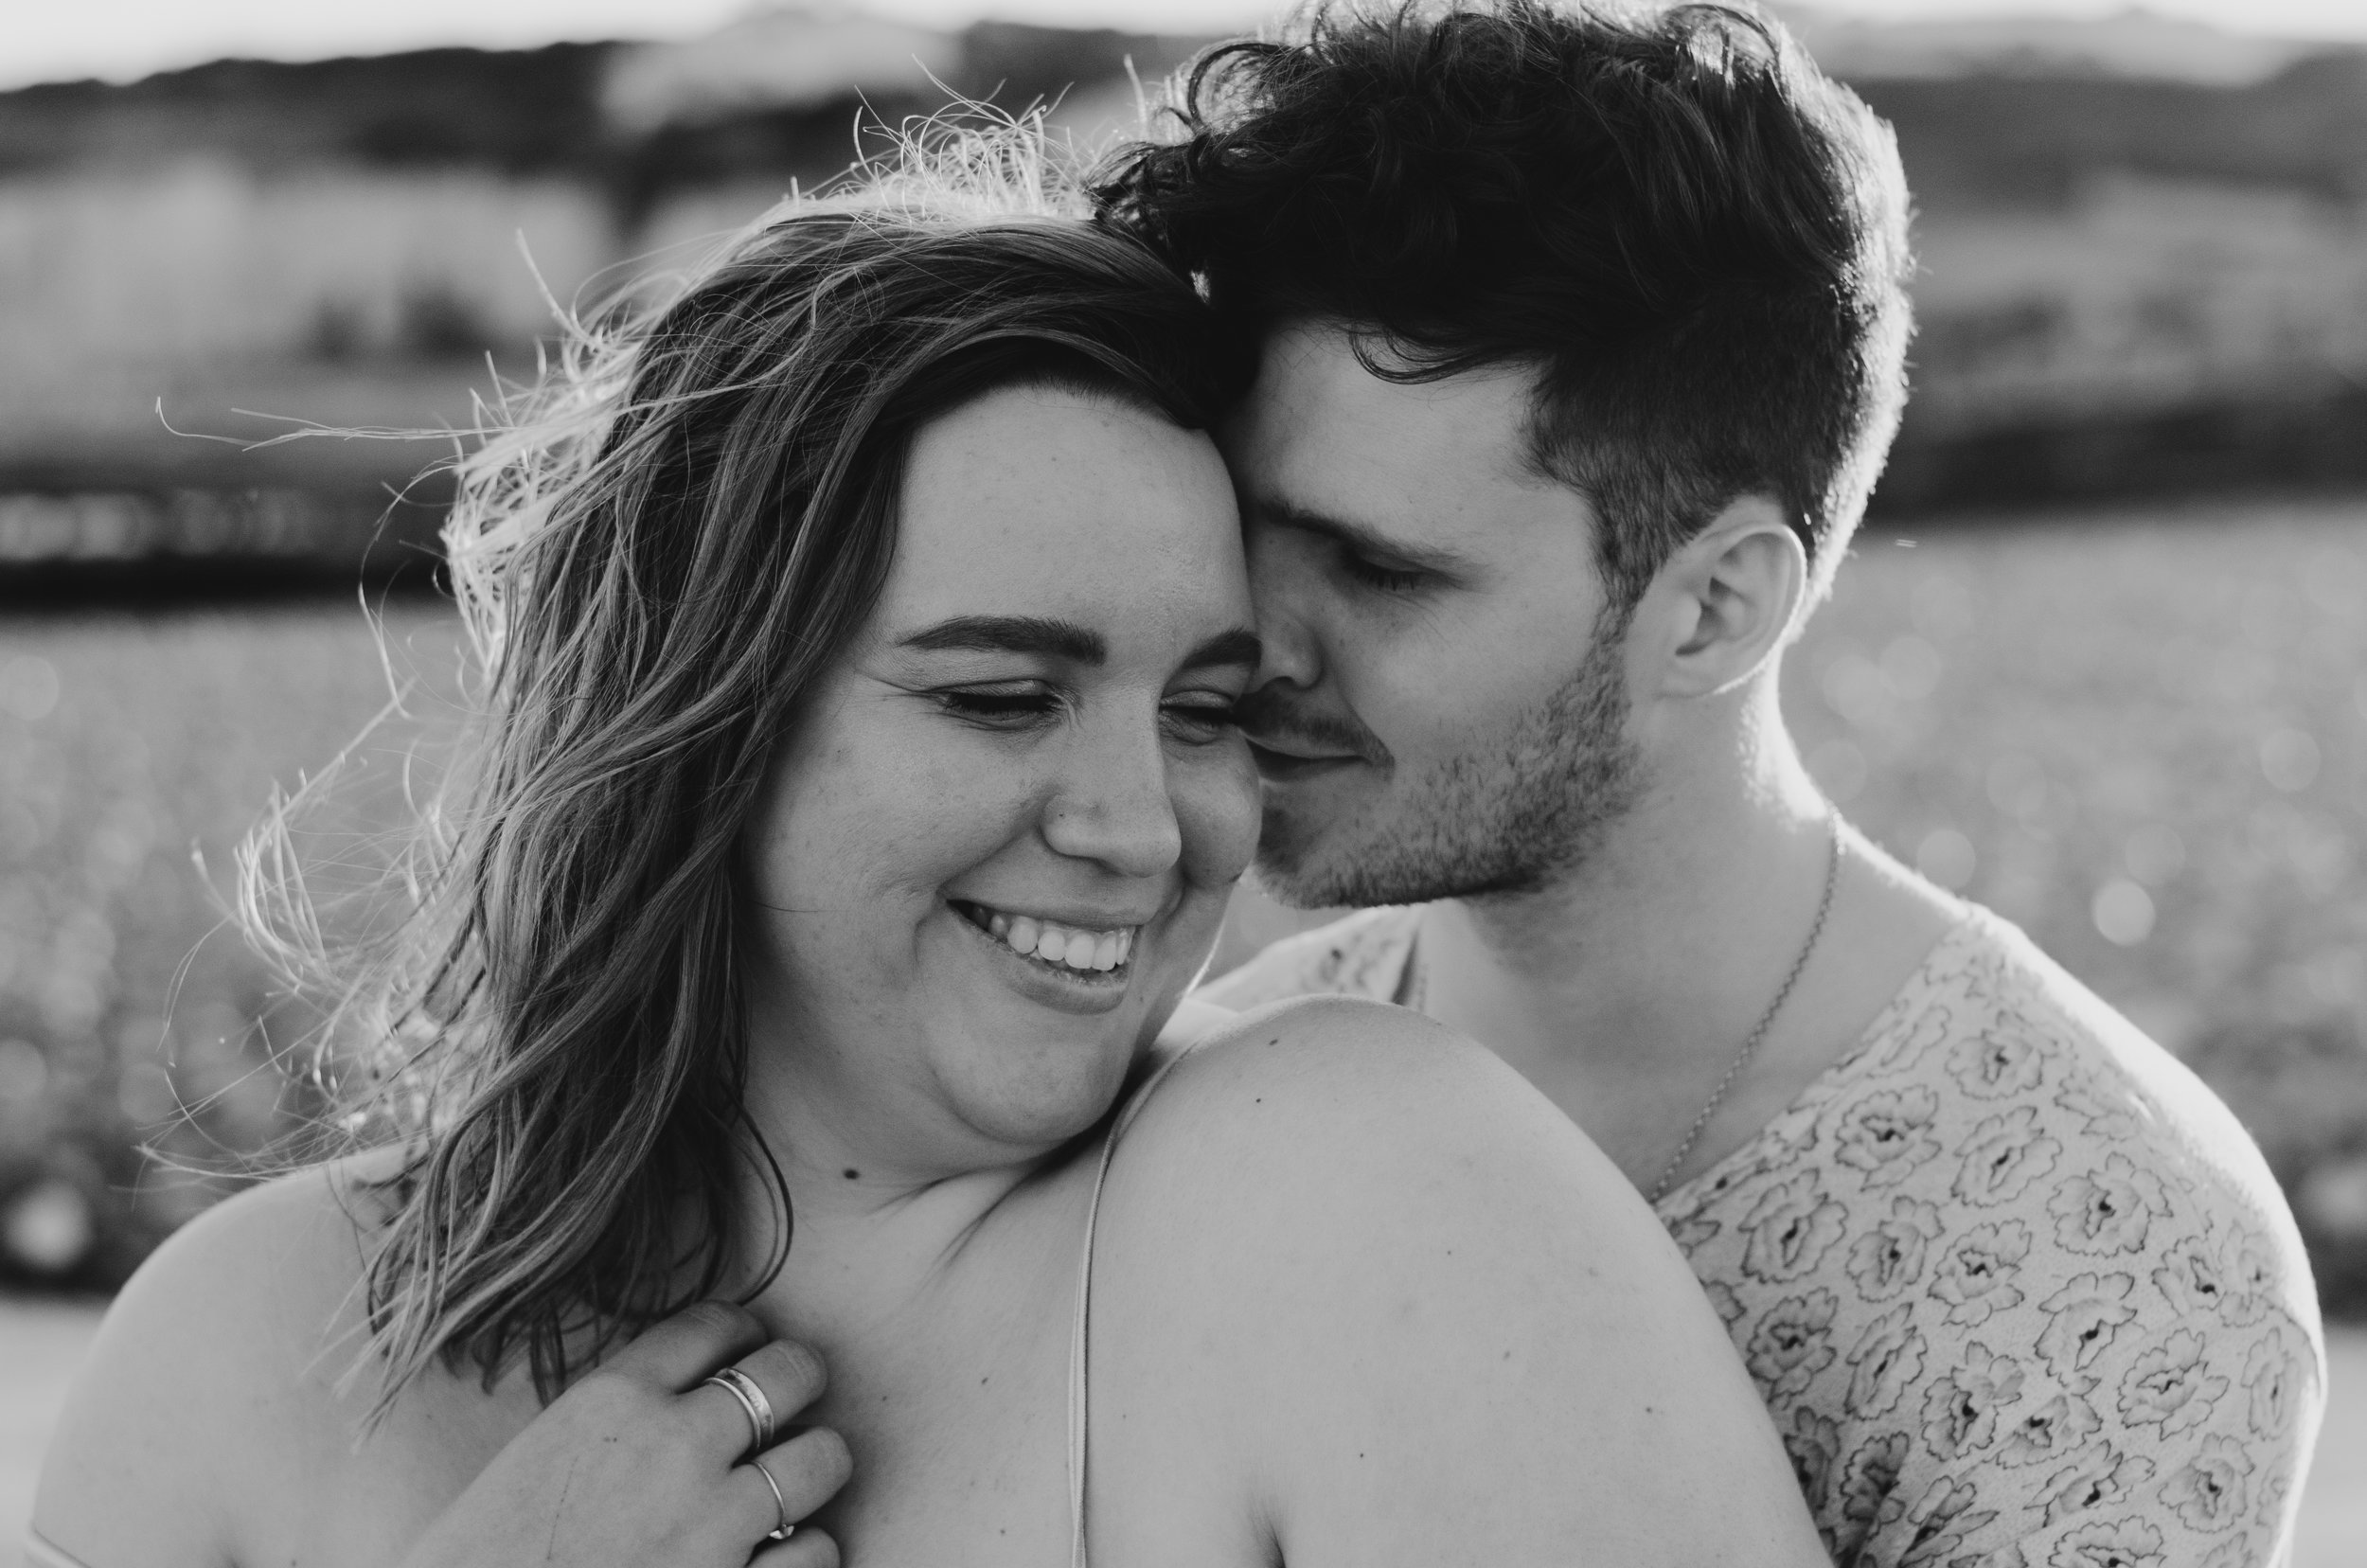 Rebecca & Dougie - Cuckmere Haven - Couple Session - Aiste Saulyte Photography-53.jpg